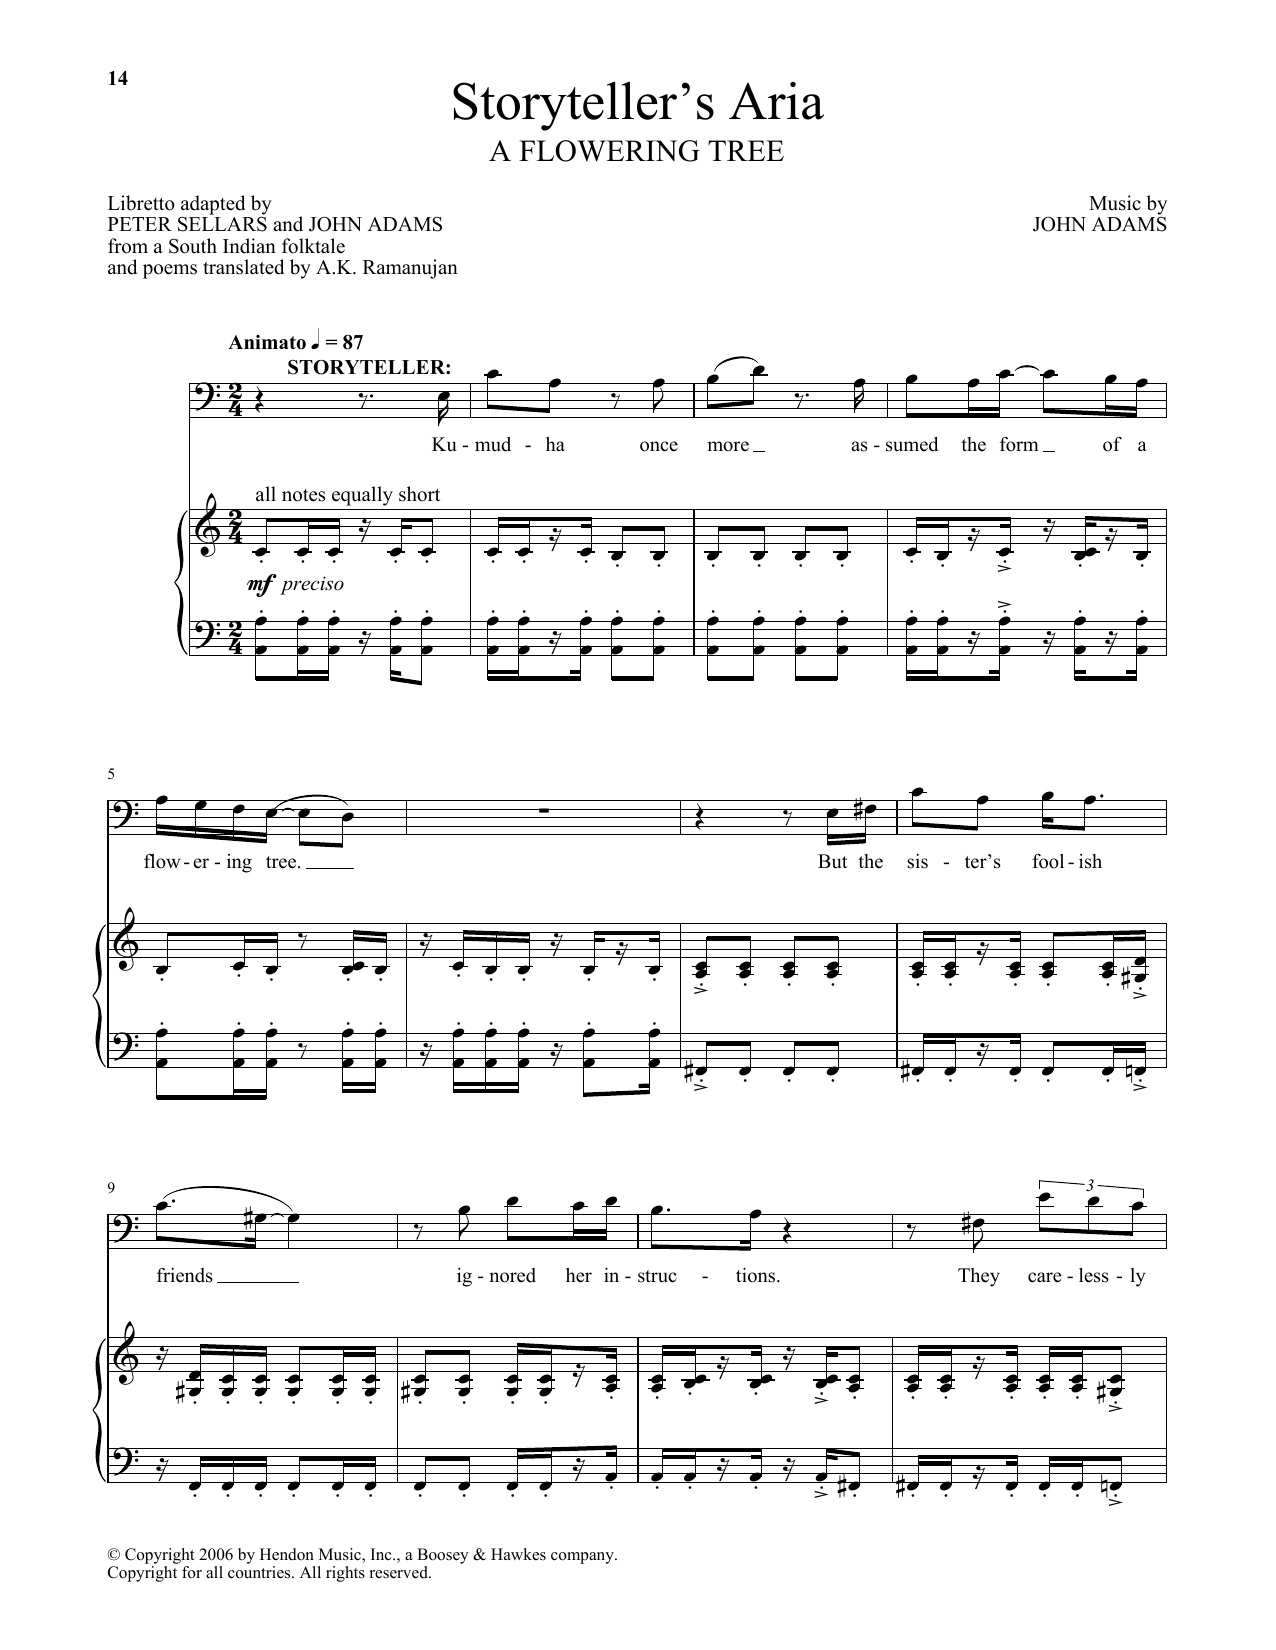 John Adams Storyteller's Aria (from A Flowering Tree) sheet music notes and chords. Download Printable PDF.